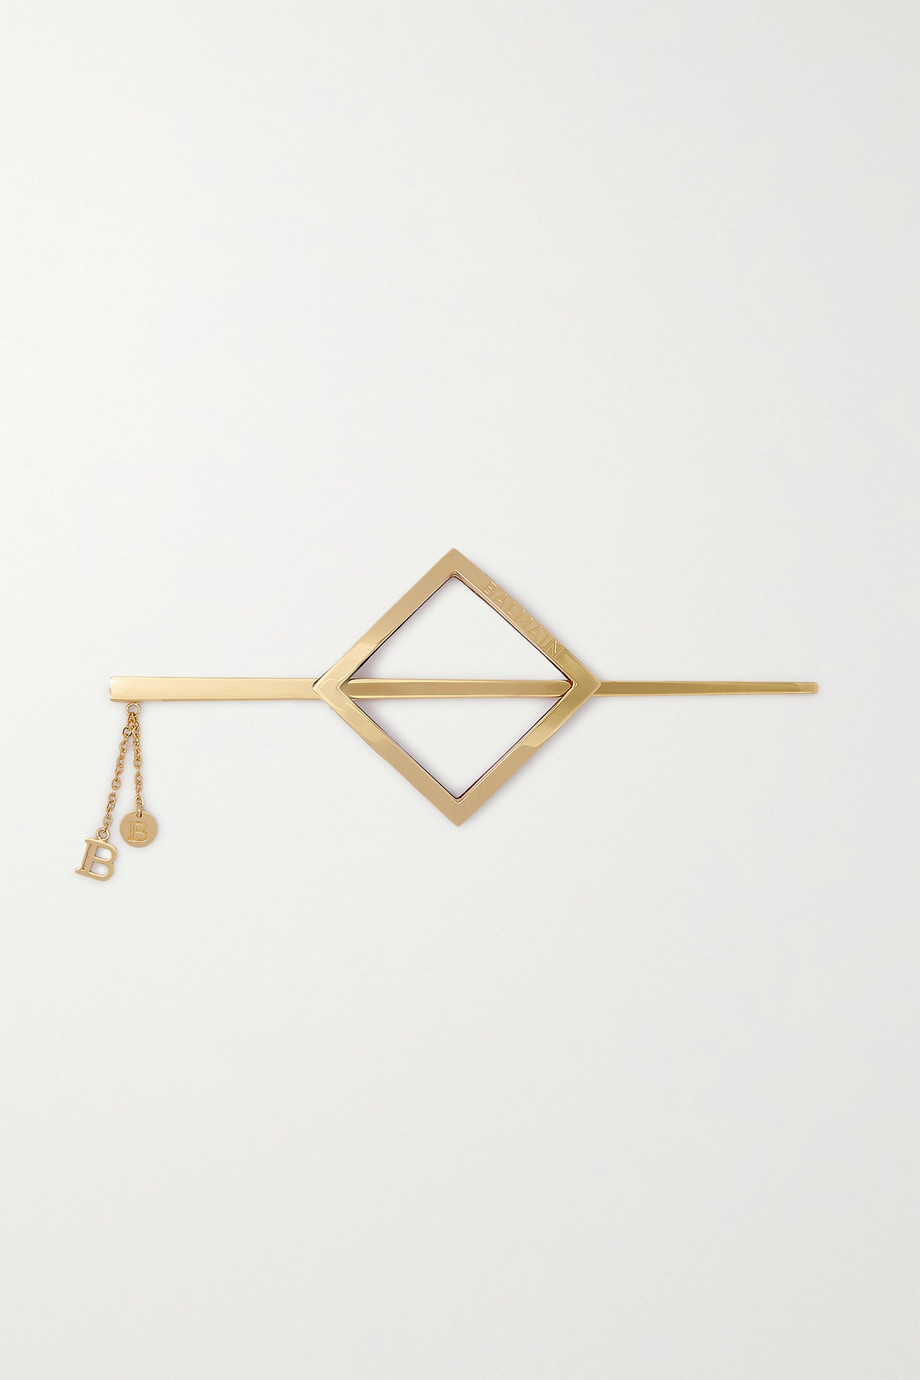 BALMAIN PARIS HAIR COUTURE Gold-plated hair pin